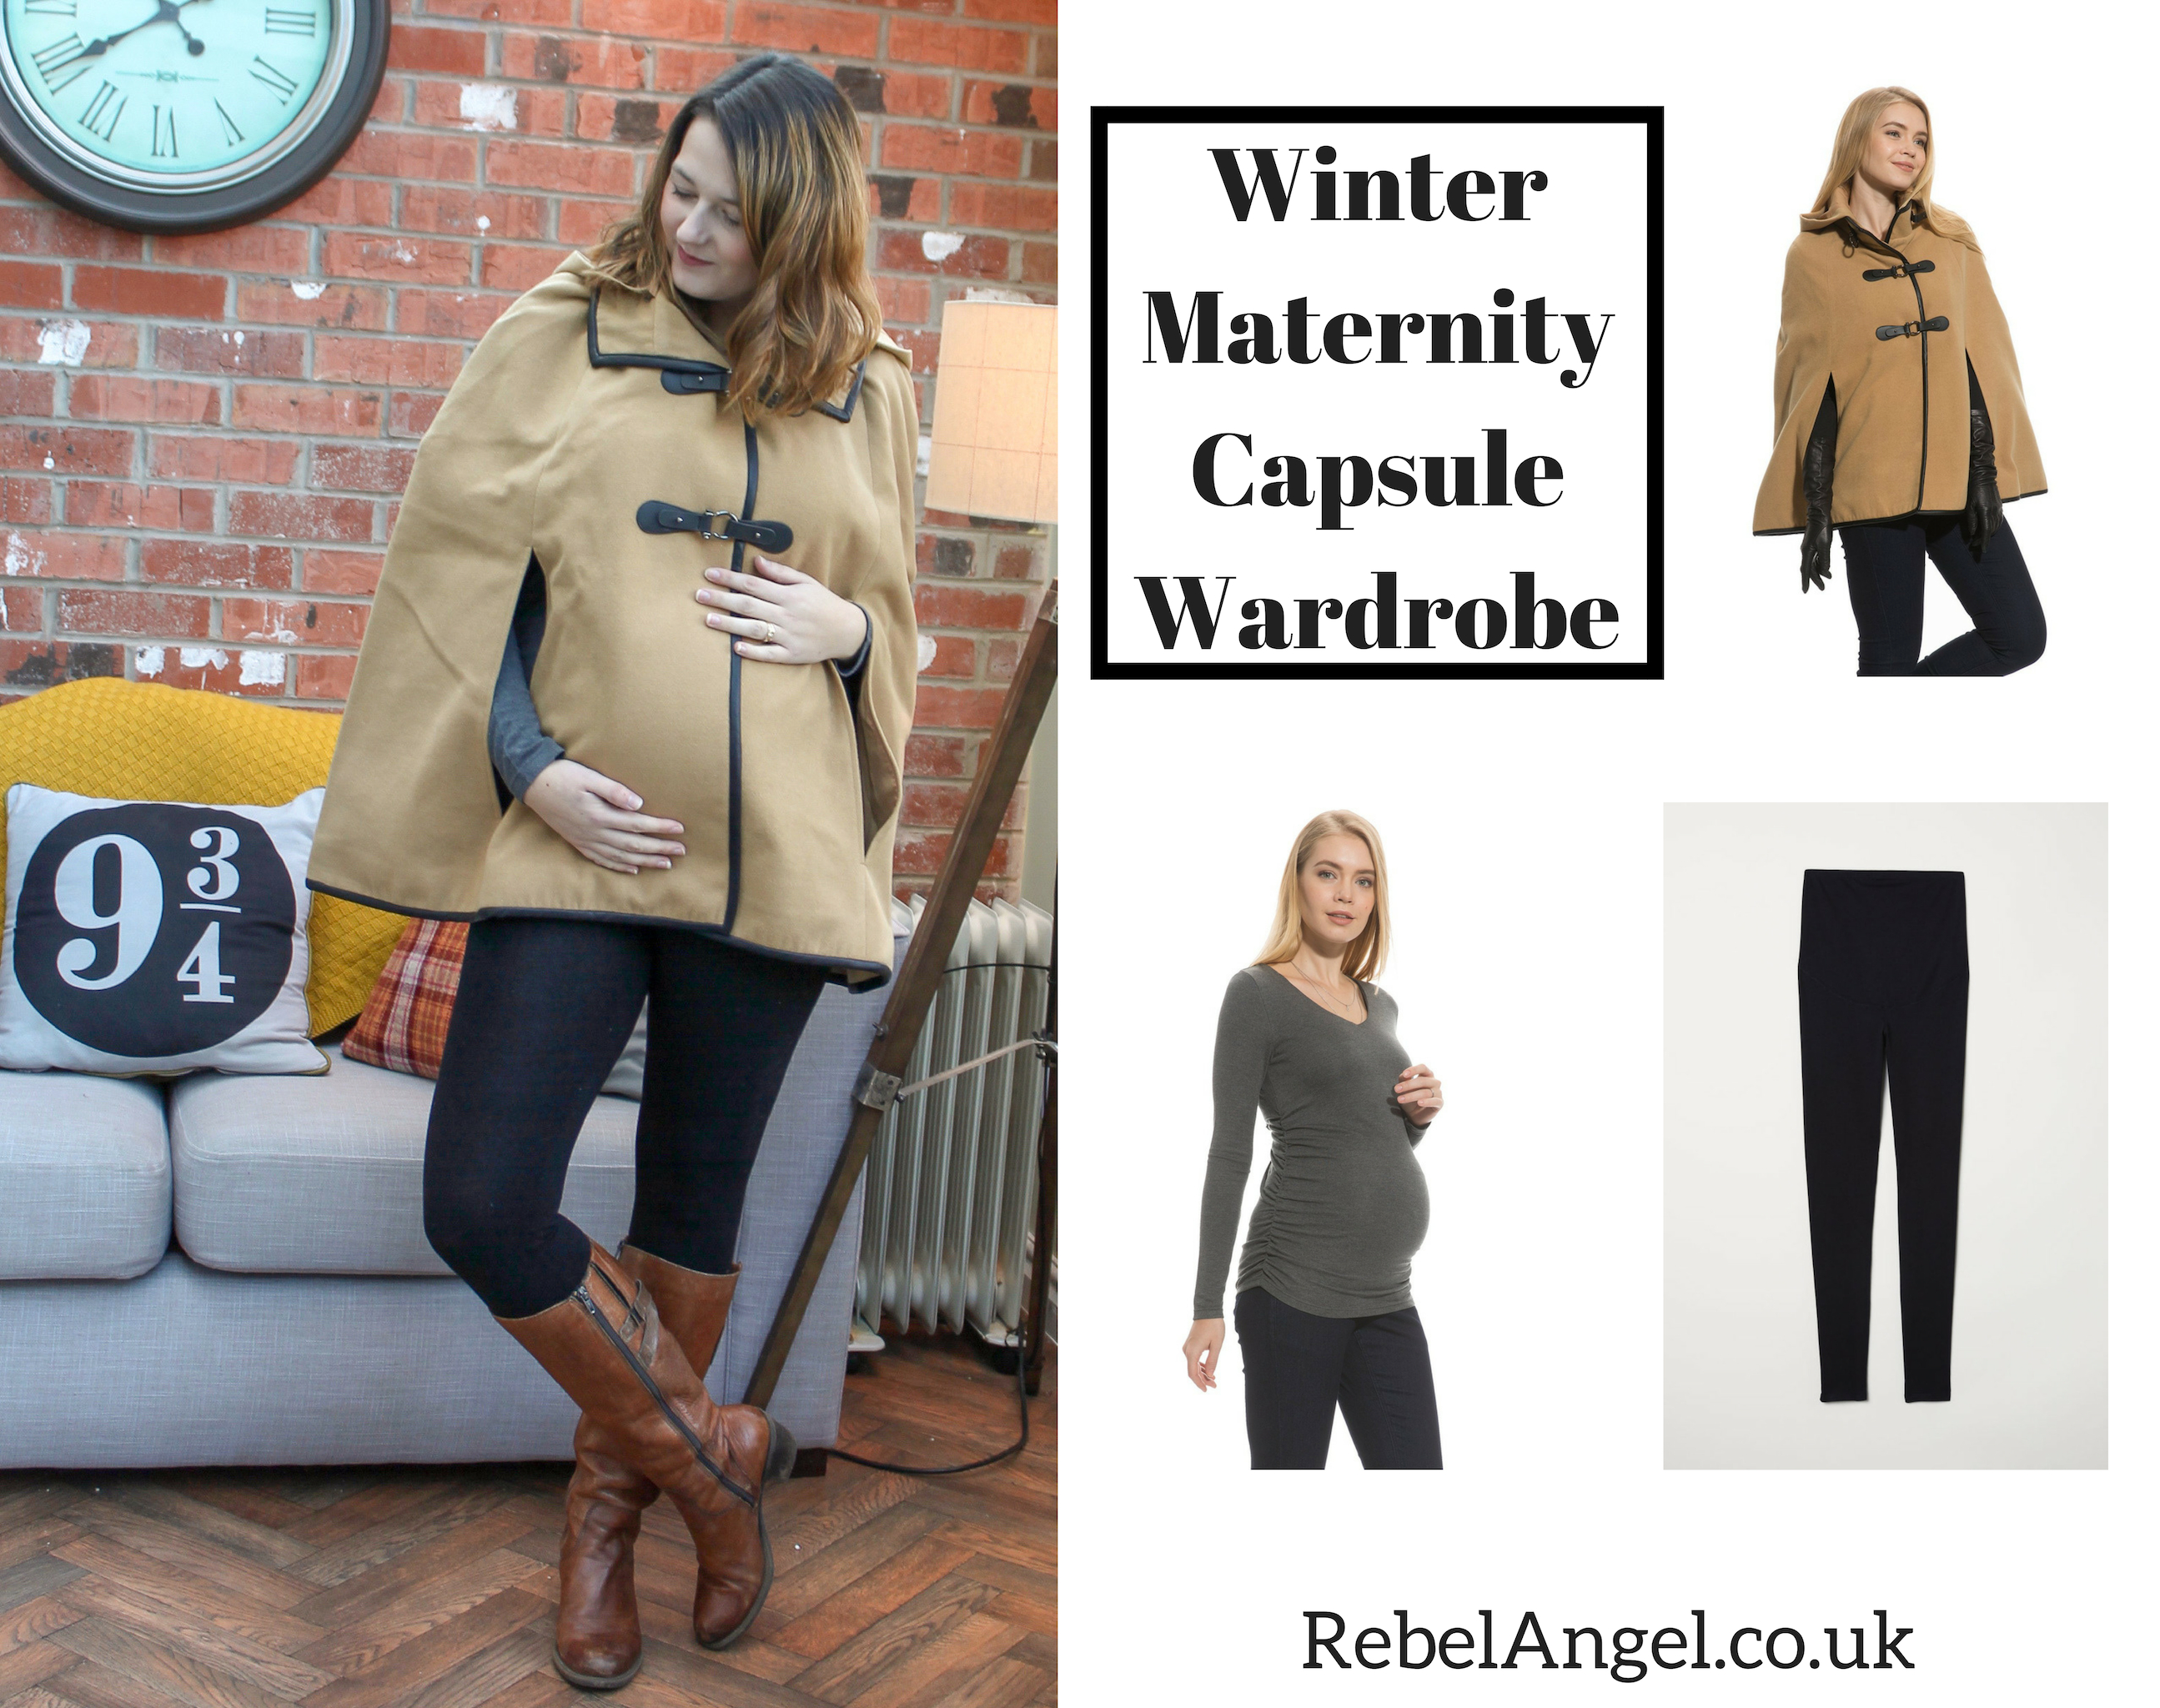 Winter Maternity Capsule Wardrobe outfit - cape coat with leggings